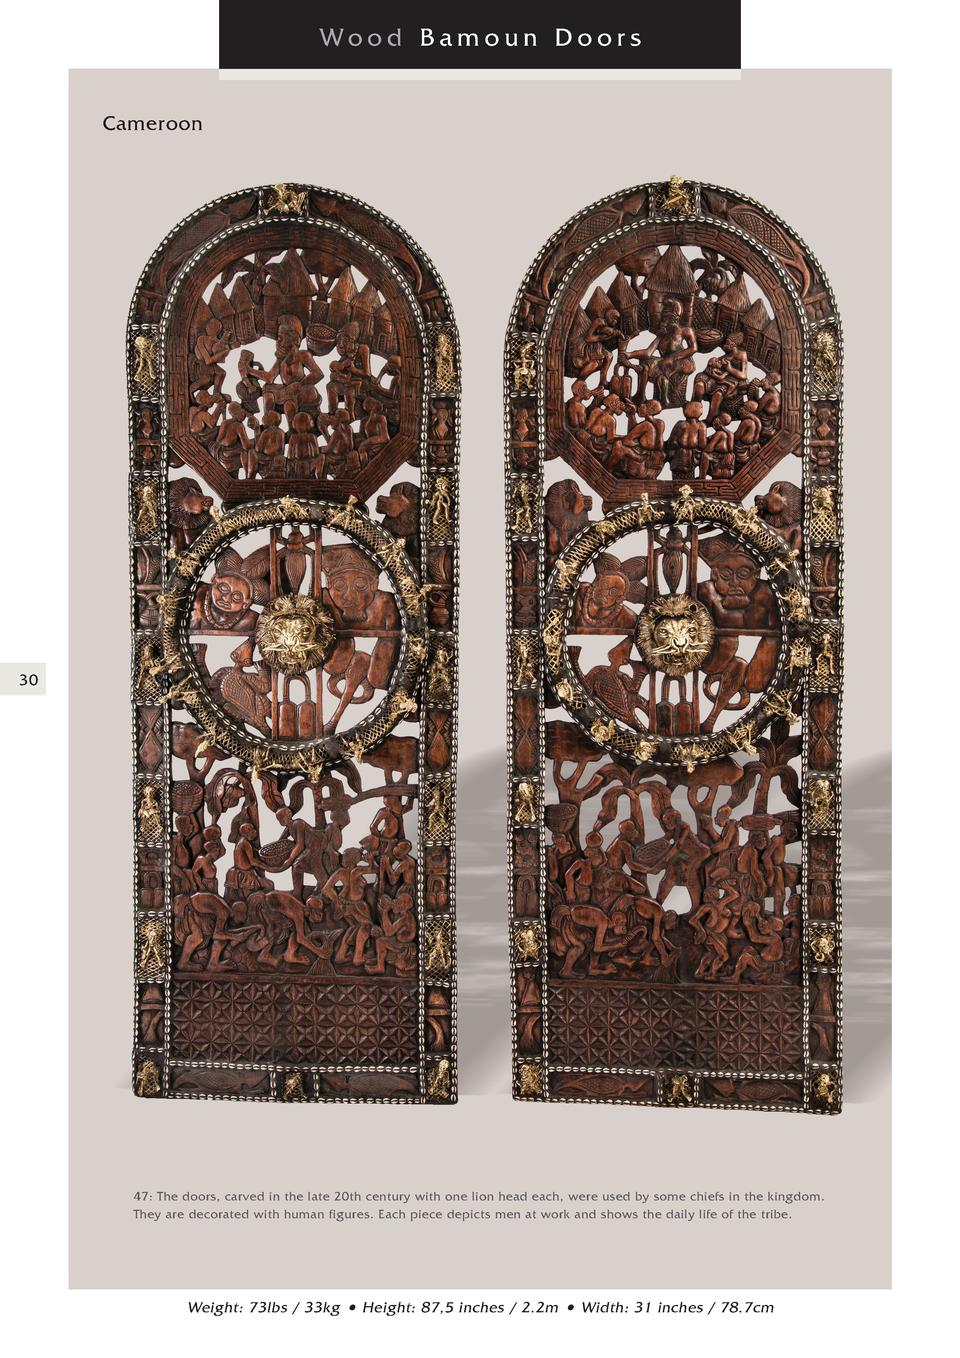 Wood Bamoun Doors Cameroon  30  47  The doors, carved in the late 20th century with one lion head each, were used by some ...